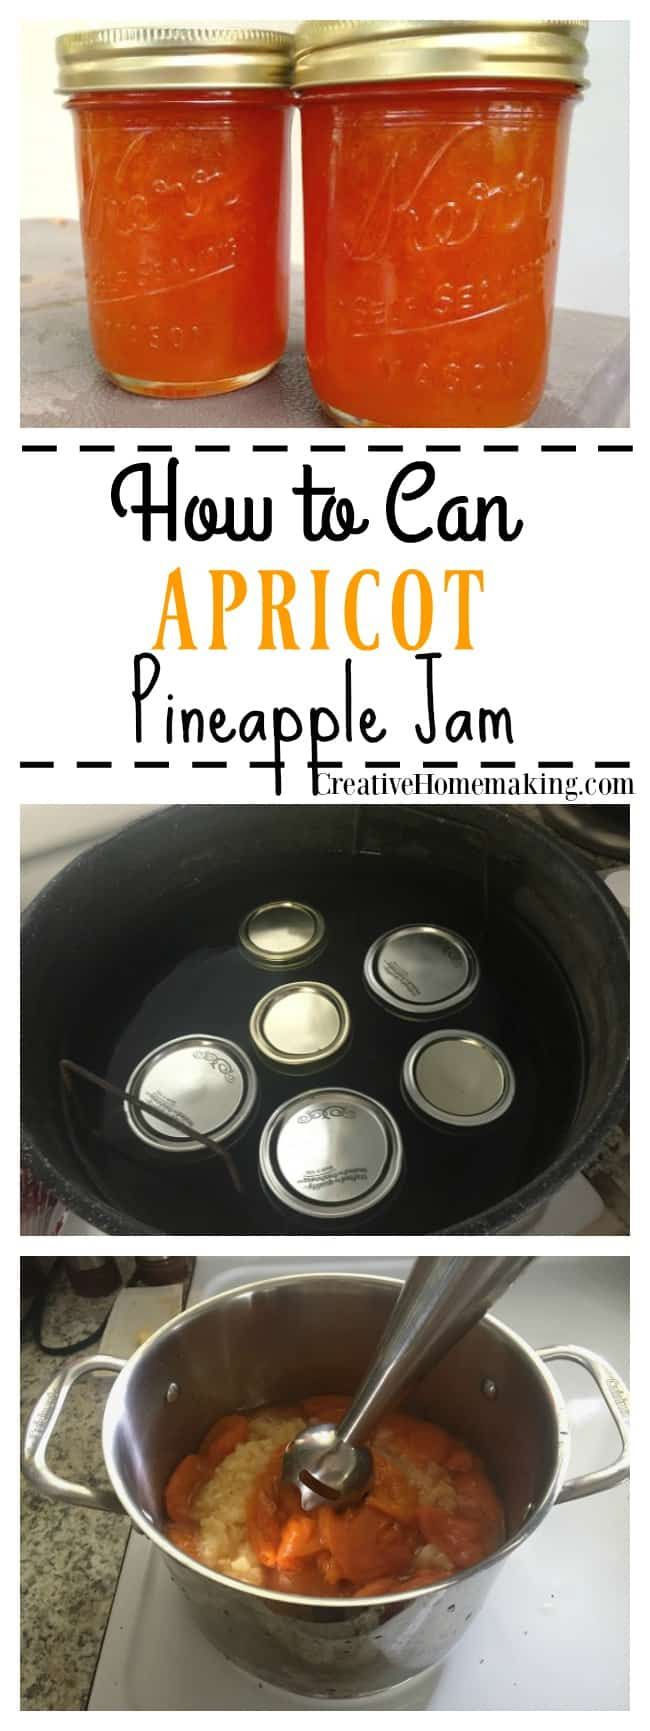 Canning Apricot Pineapple Jam